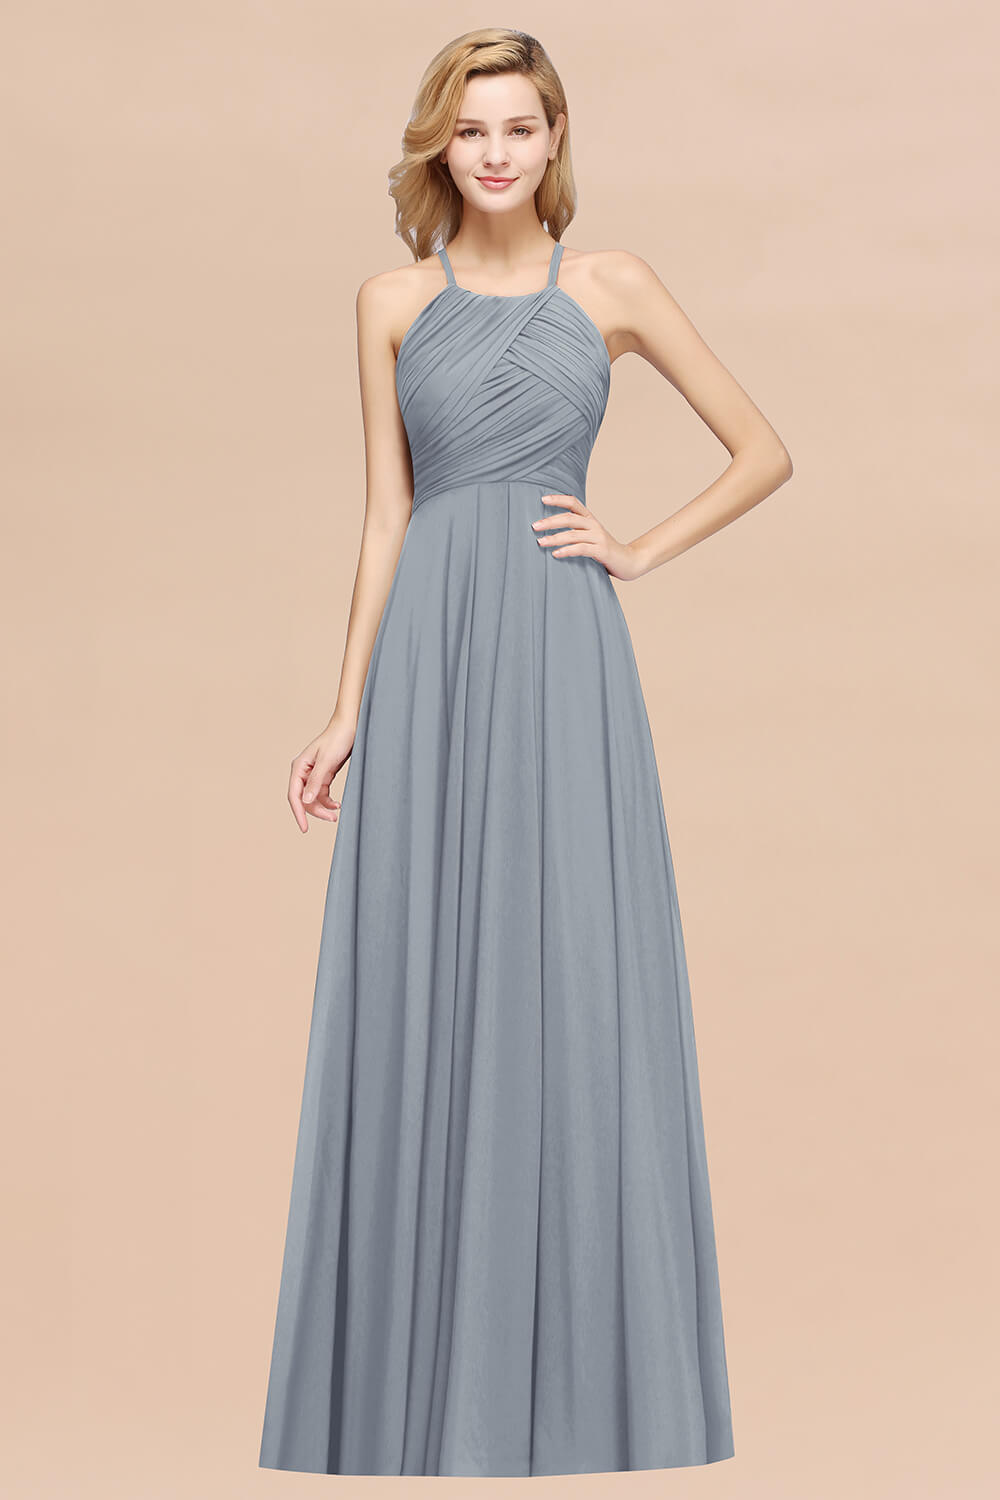 dusty blue bridesmaid dress